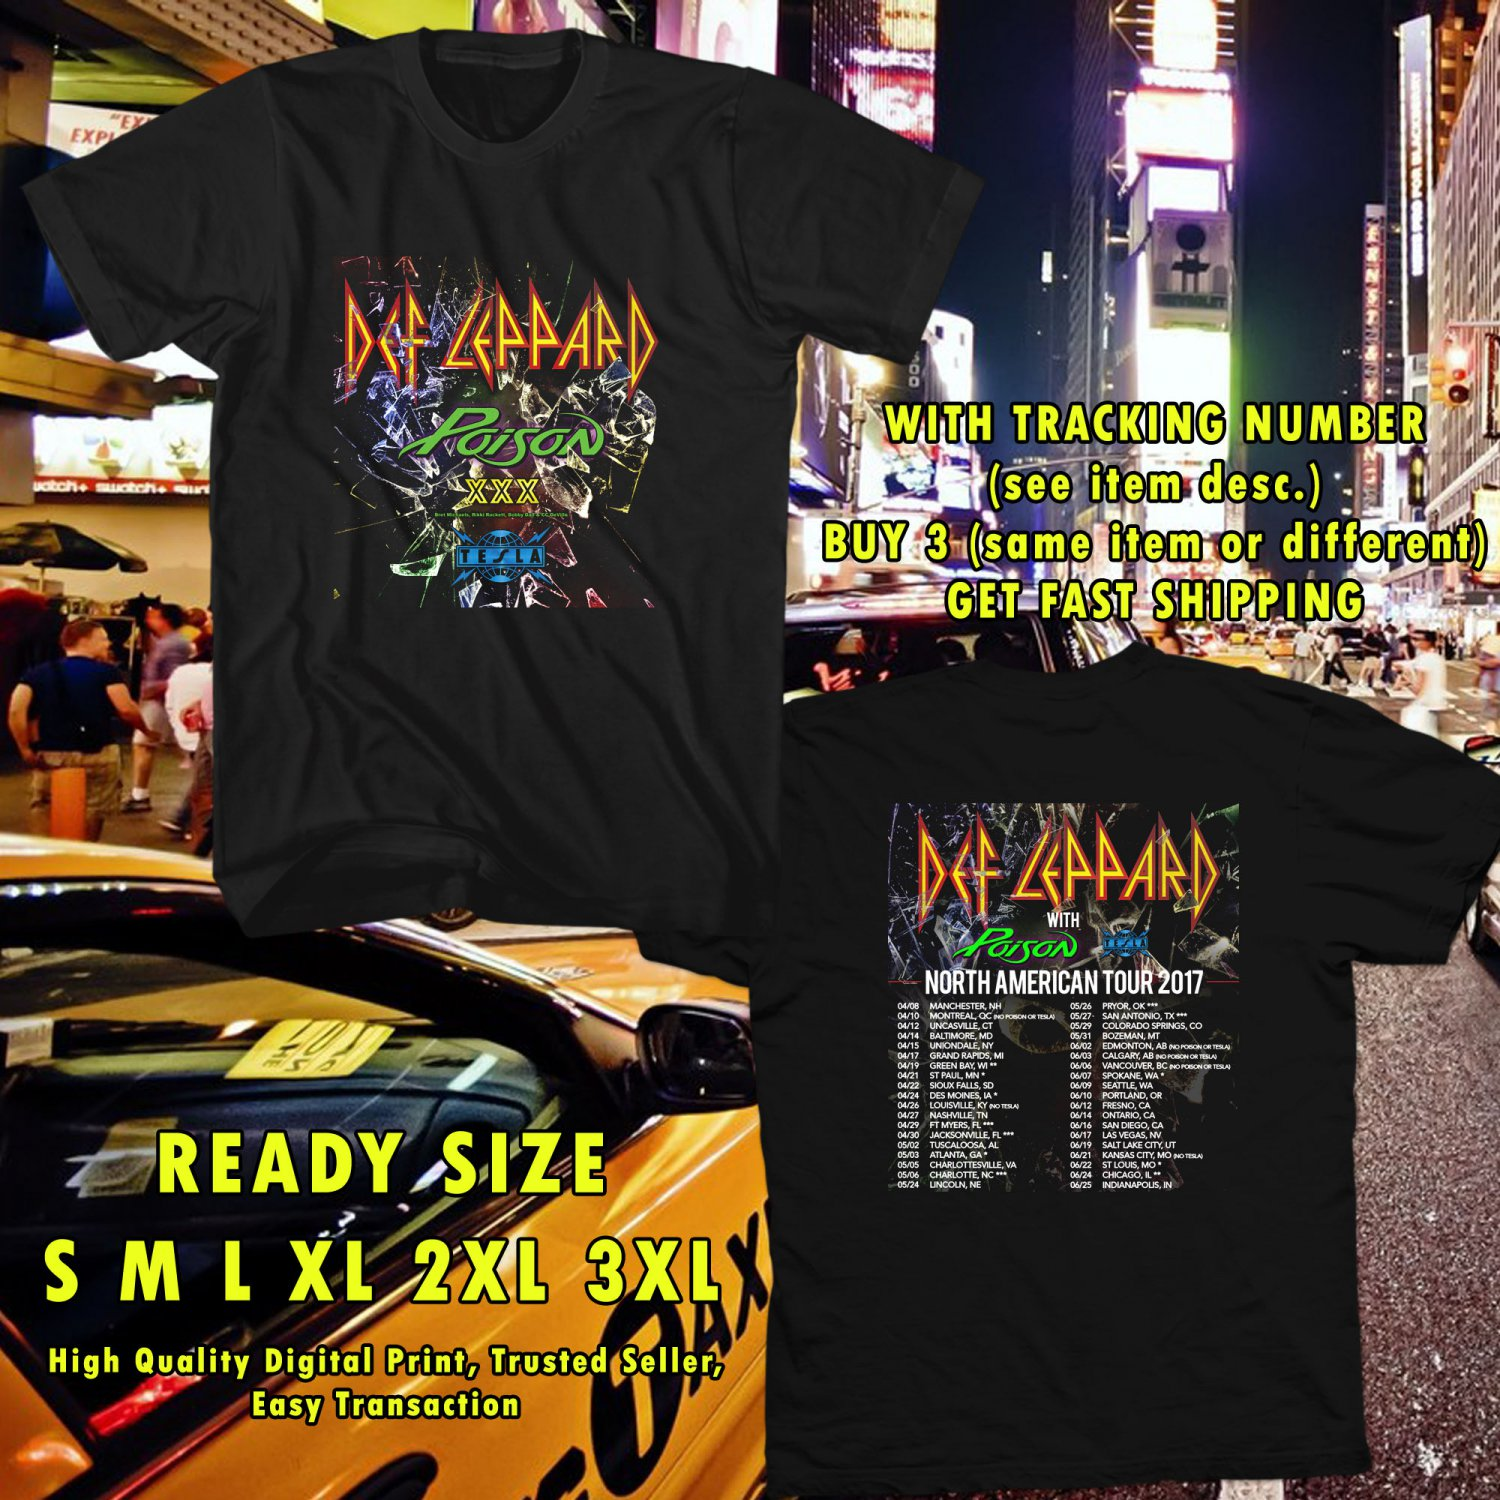 NEW DEF LEPPARD, POSION AND TESLA TOUR 2017 black TEE 2 SIDE DMTR